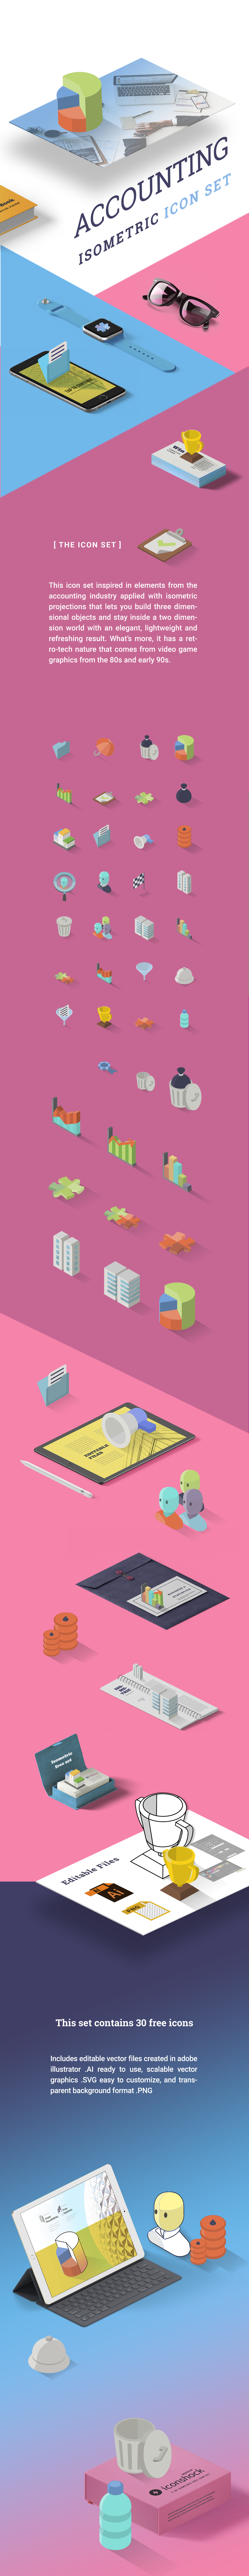 isometric_accounting_icons